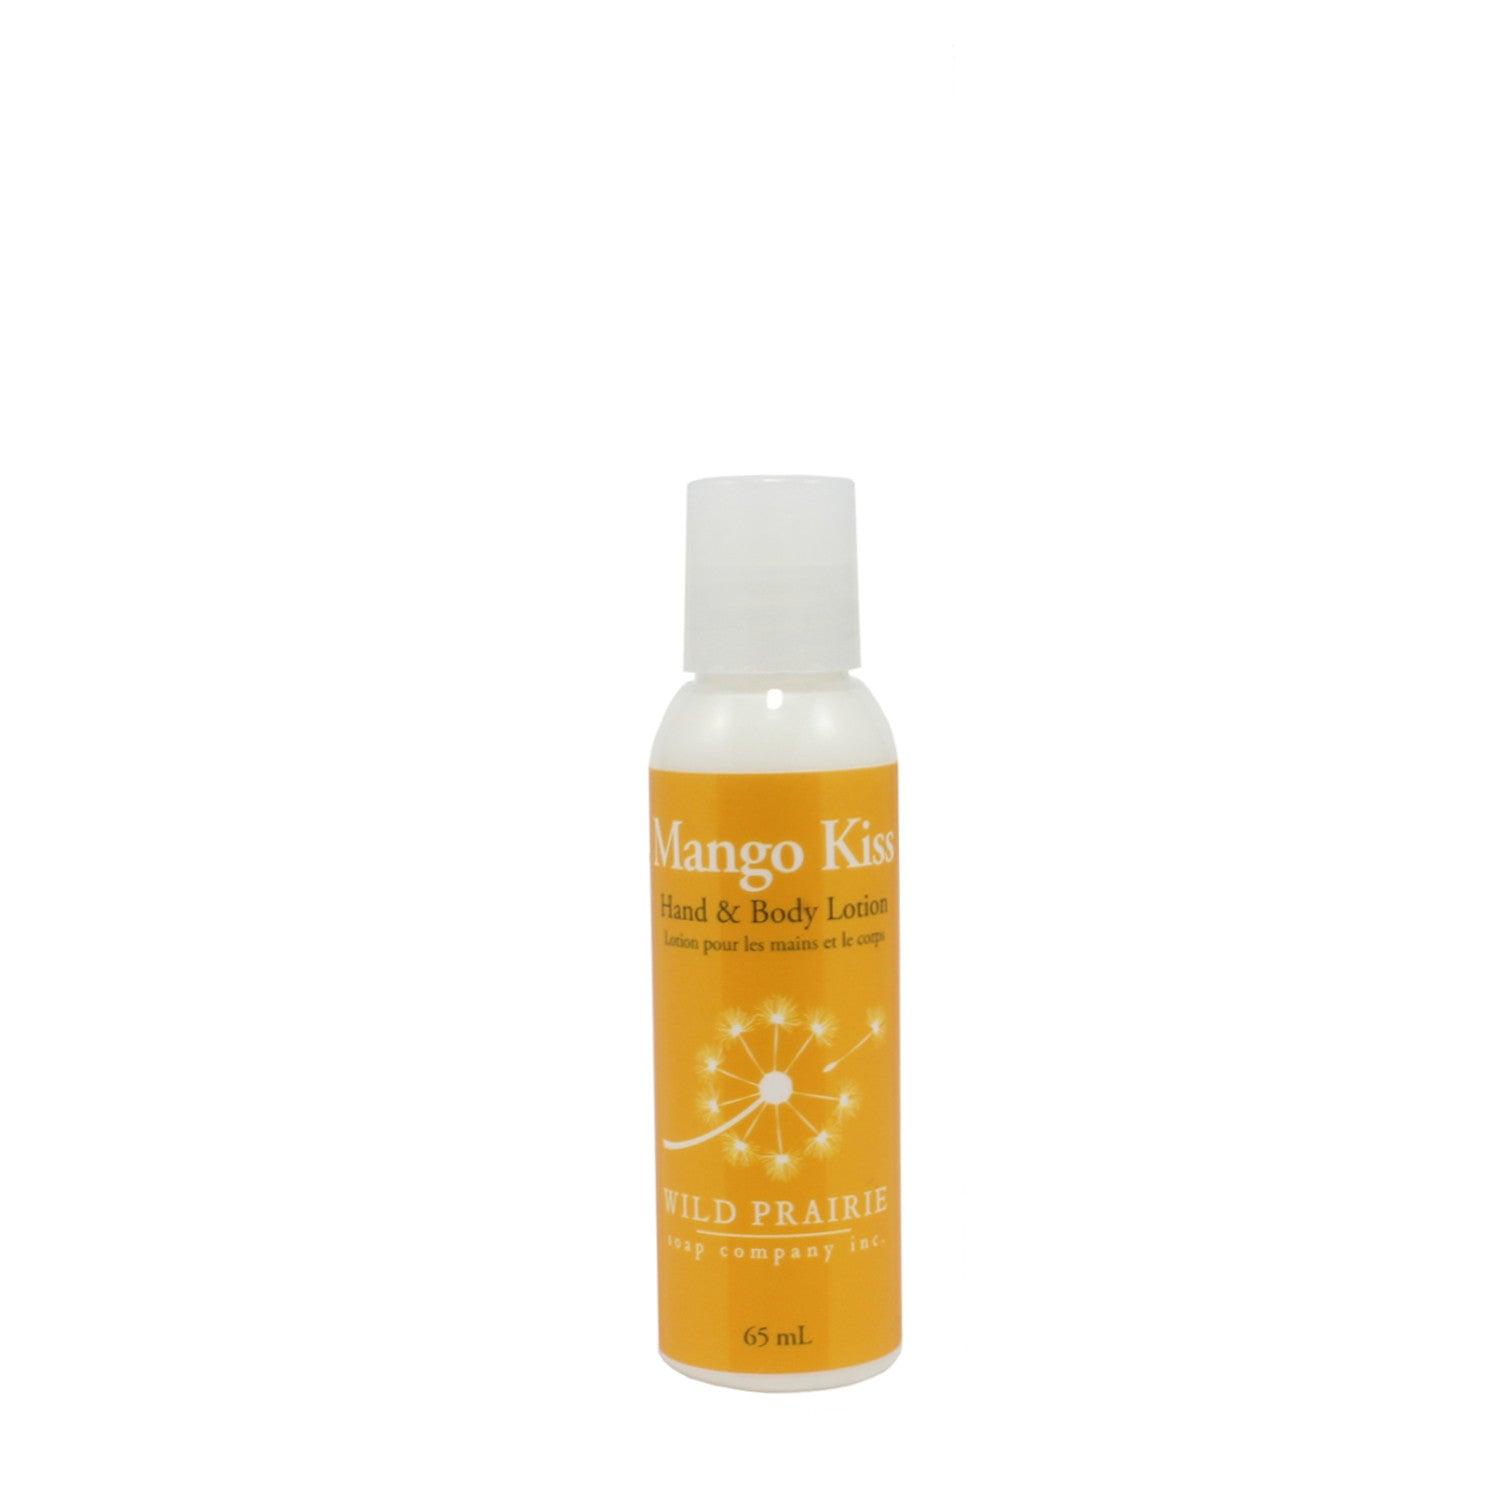 Mango Kiss Lotion